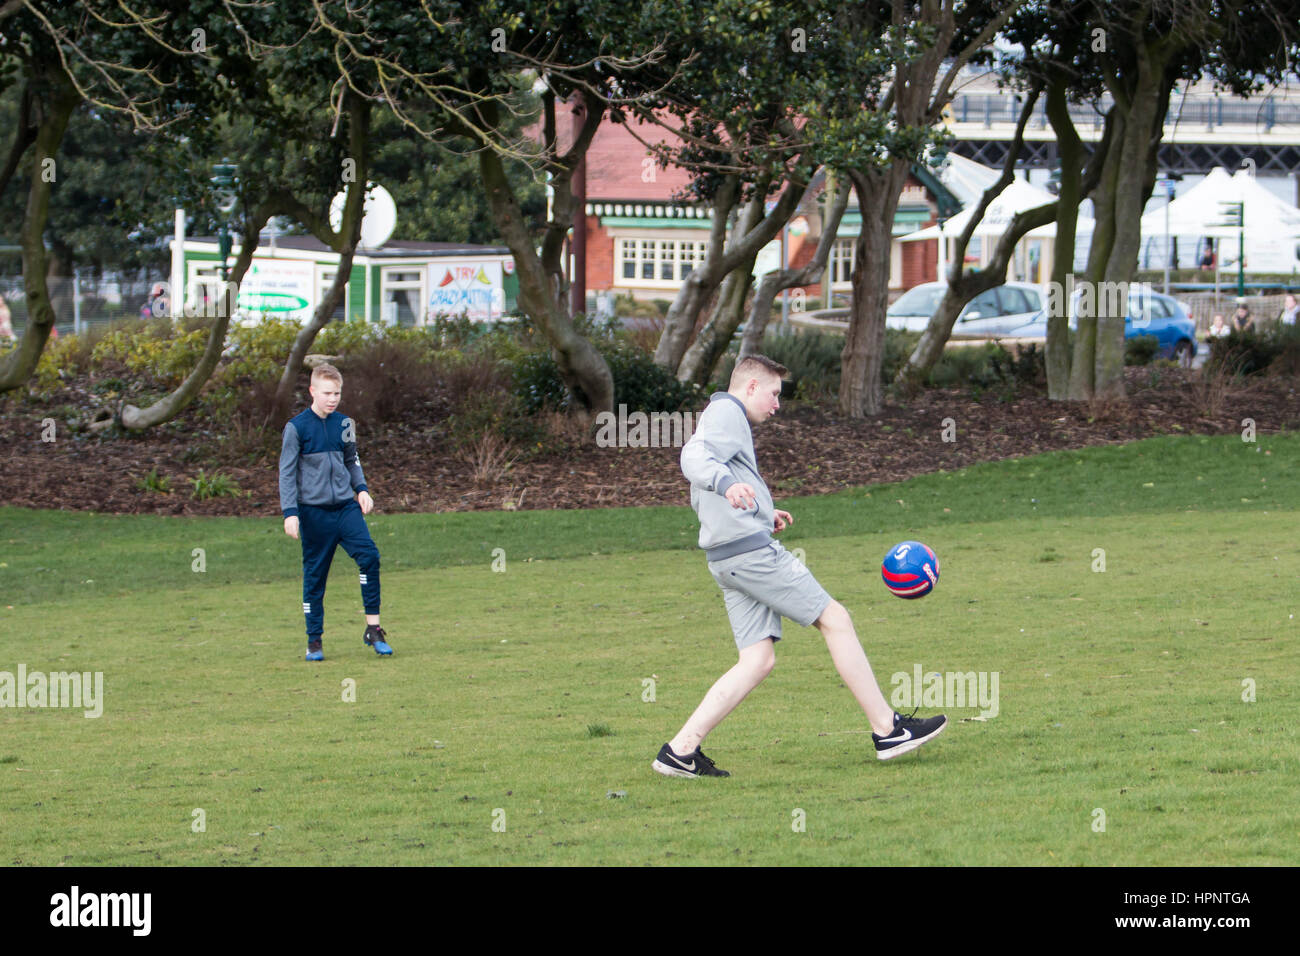 Boys enjoy a kick-around on the park next to Southport sea front during an unseasonally warm February day. 22/02/17. - Stock Image